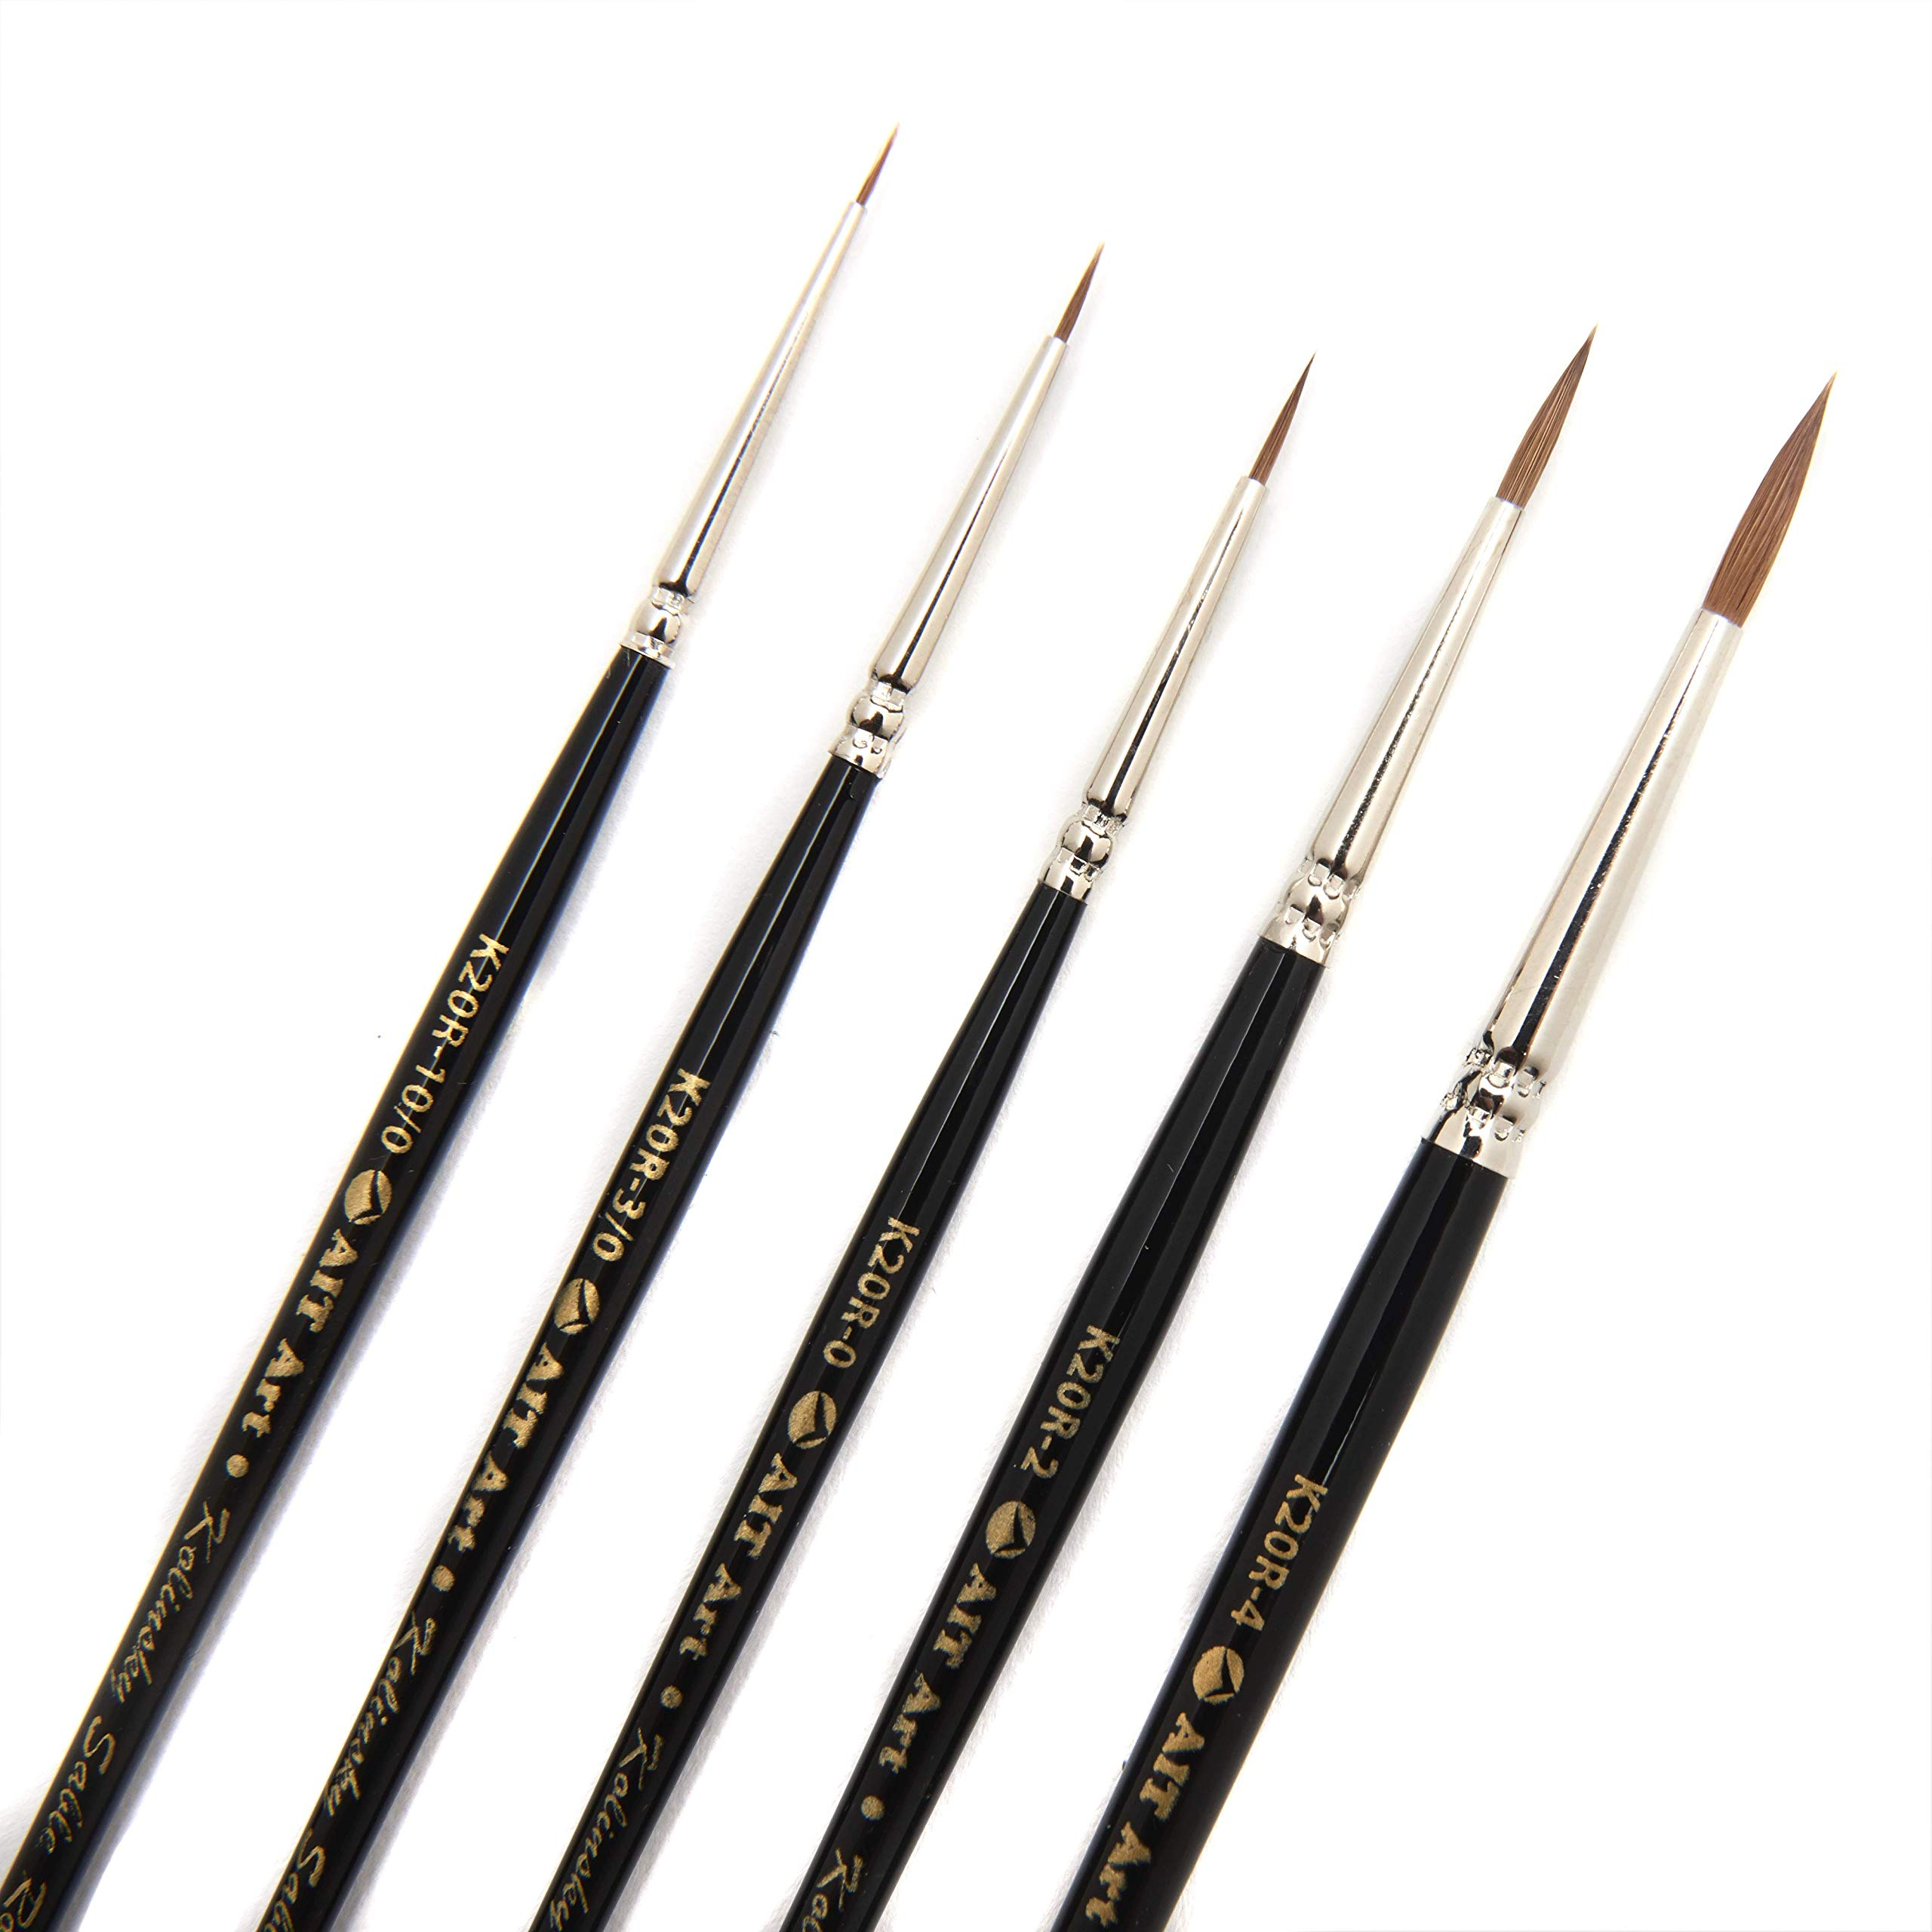 AIT Art Premium Detail Brush Set, 5 Pure Kolinsky Russian Red Sable Paint Brushes, Handmade in USA, Best Quality Set for Ultimate Details with Oil, Acrylic, and Watercolors